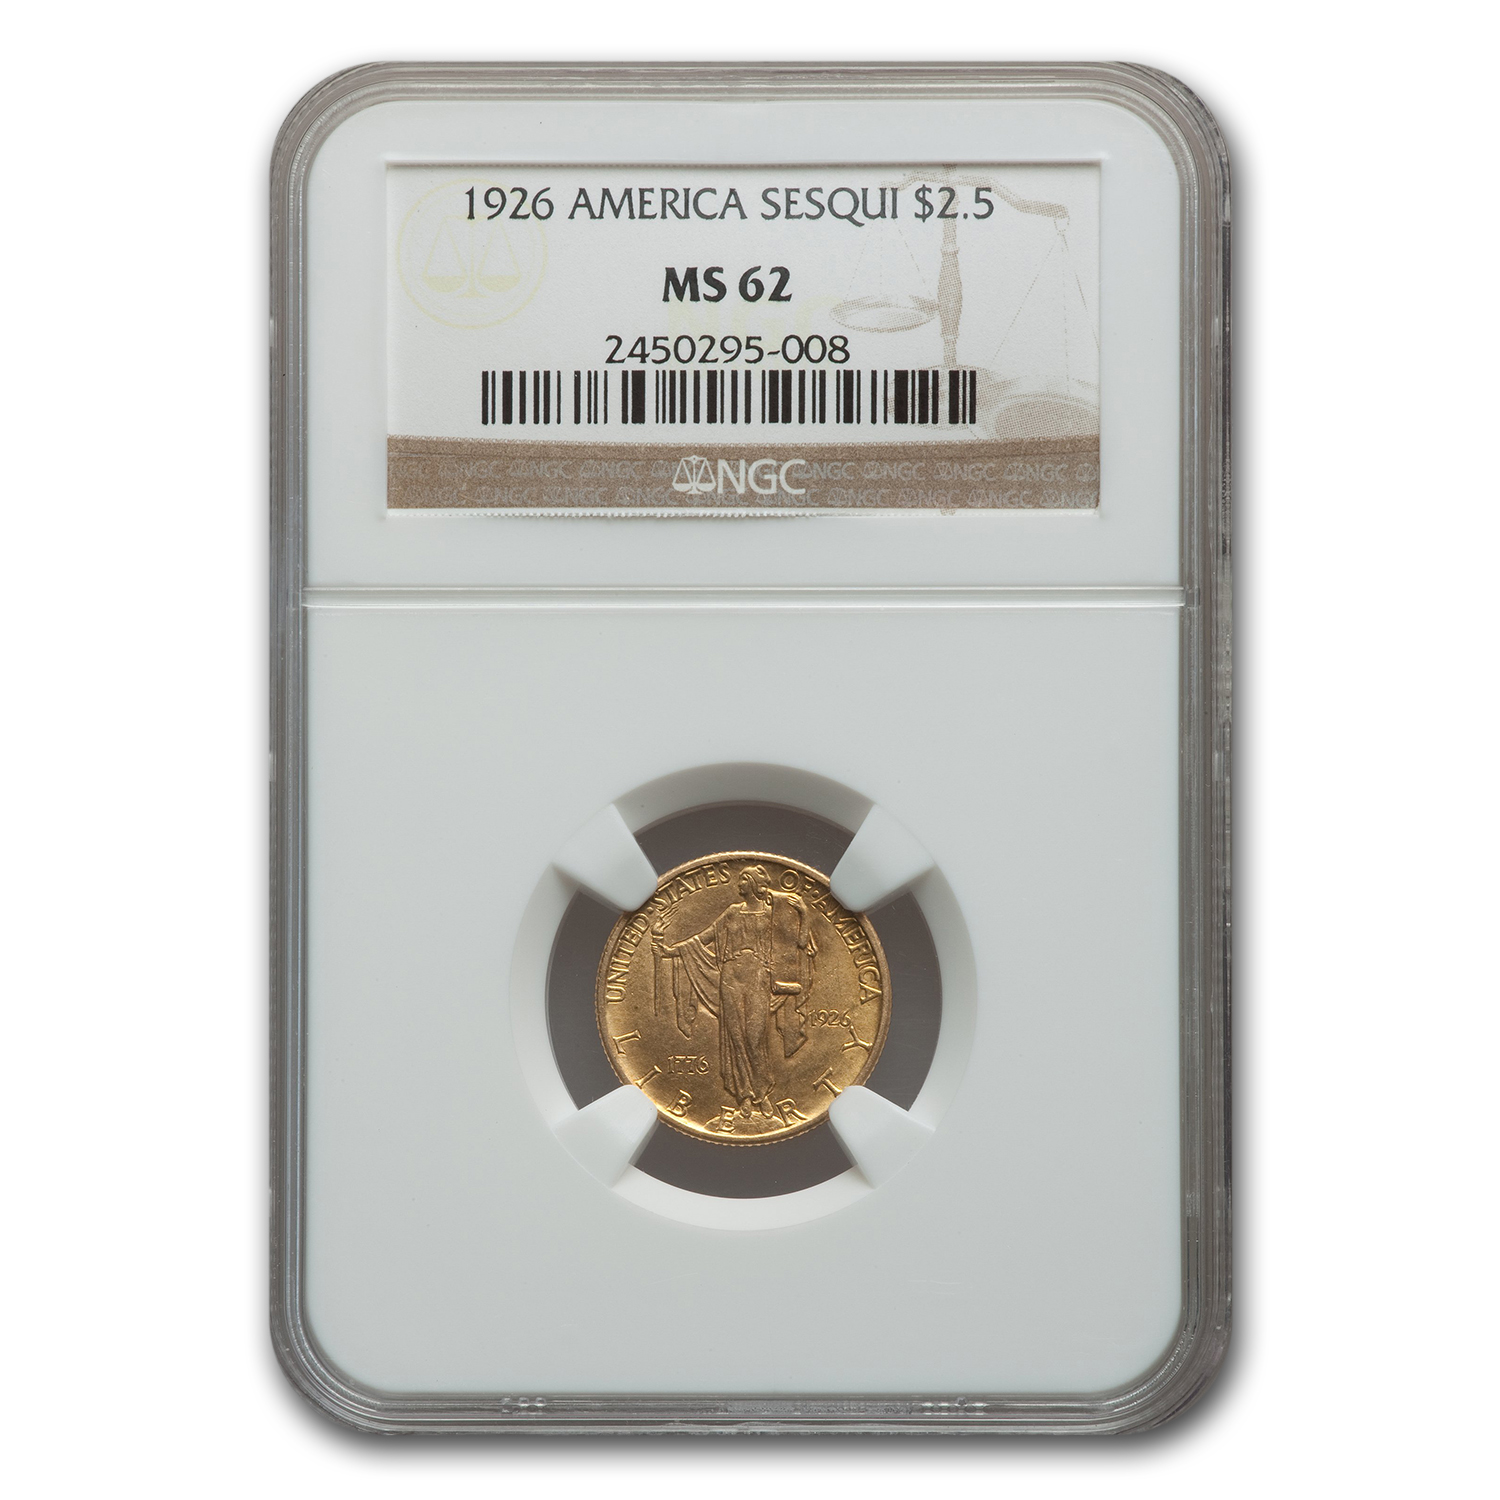 1926 $2.50 Gold America Sesquicentennial MS-62 NGC